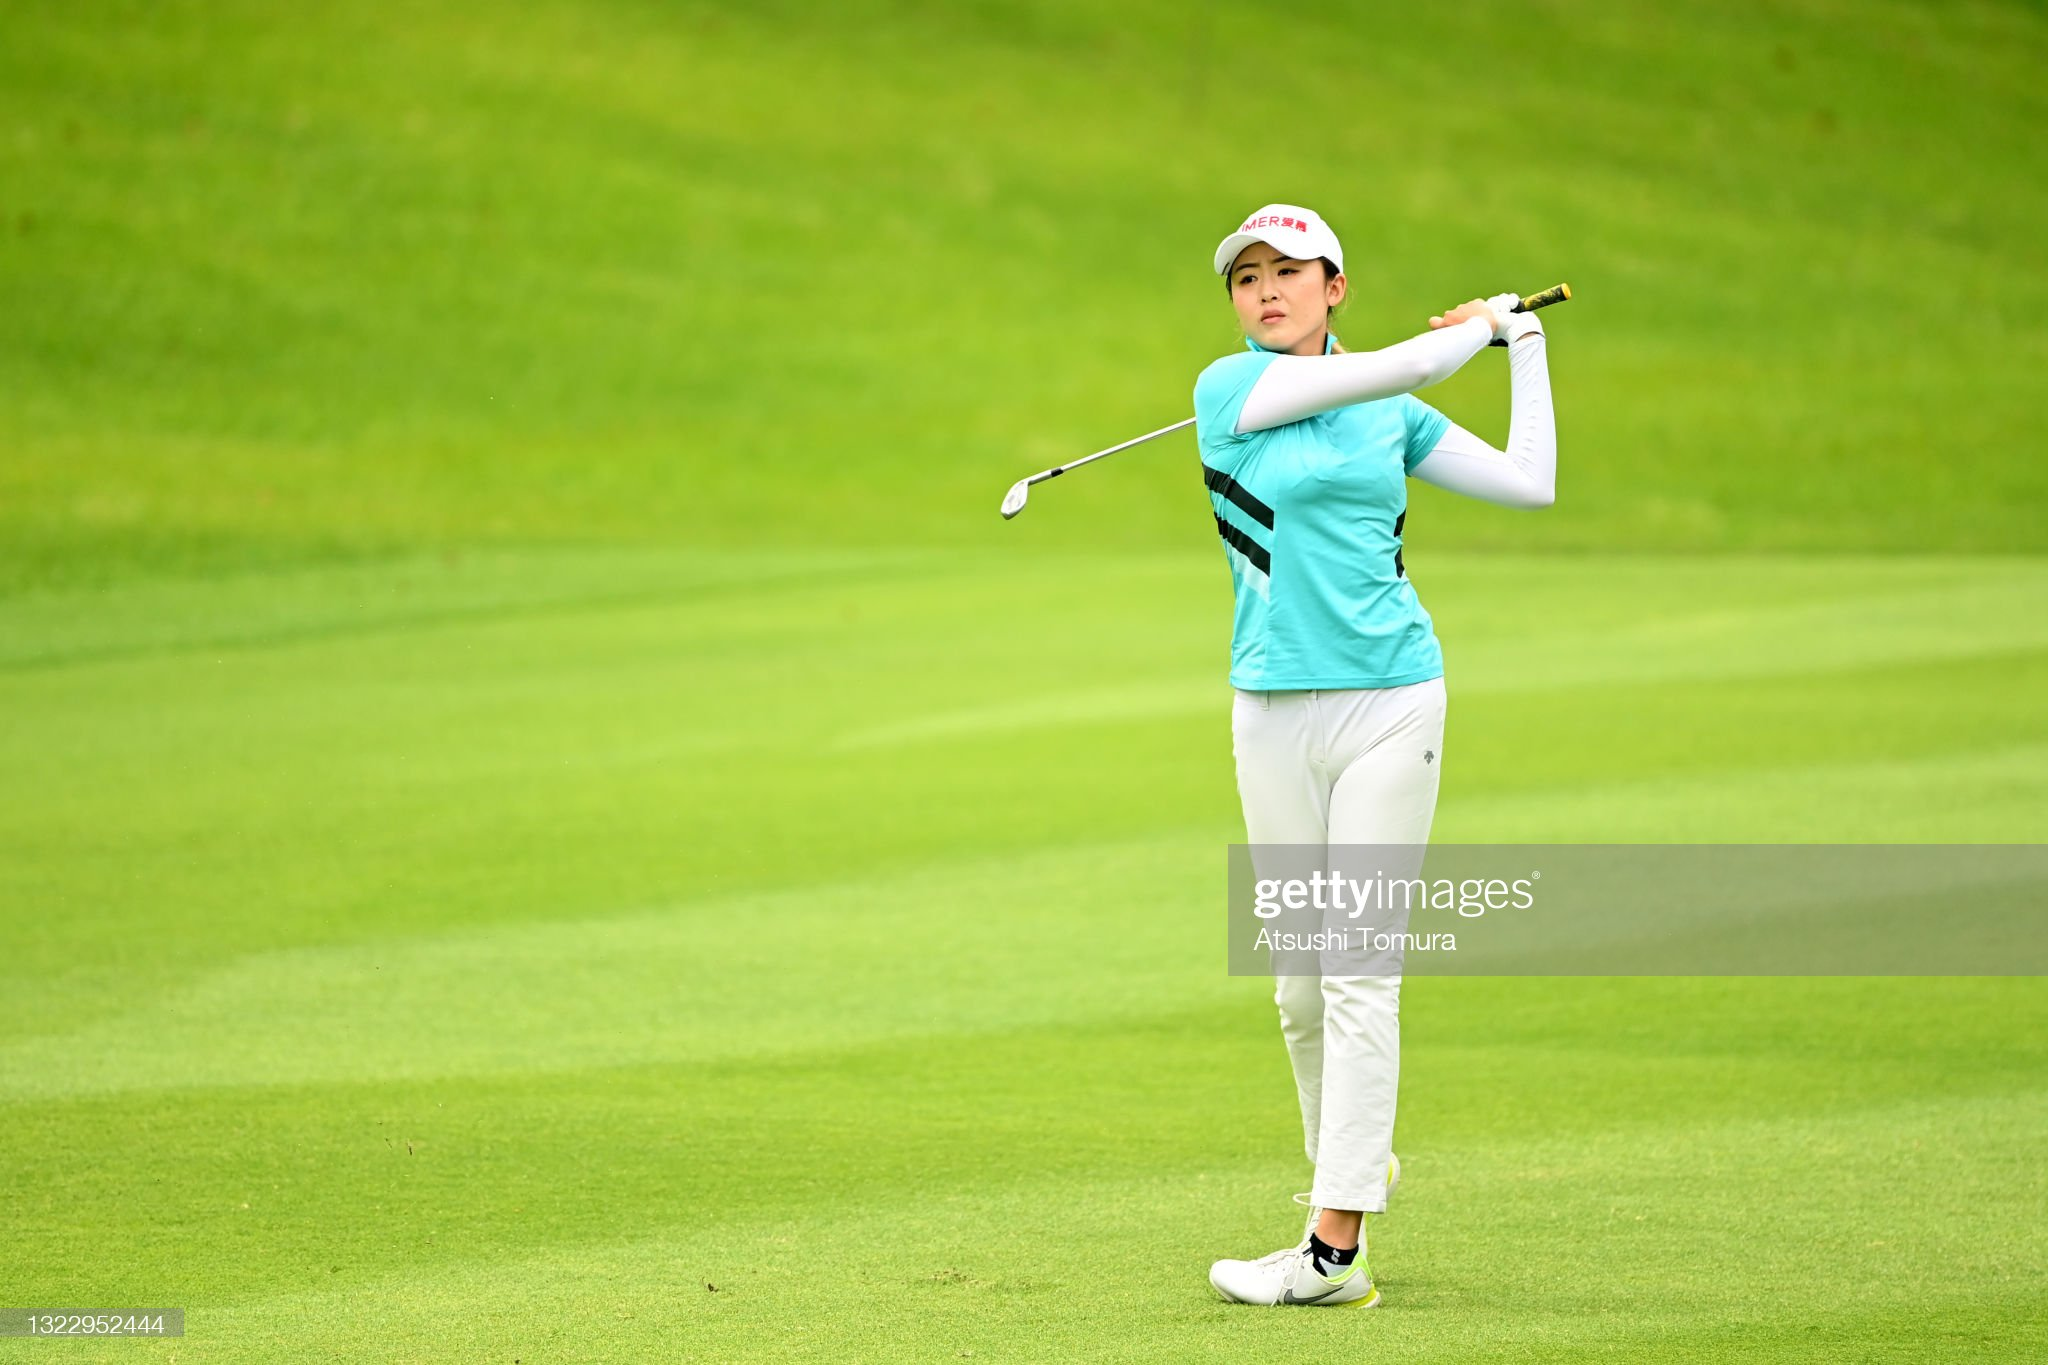 https://media.gettyimages.com/photos/simin-feng-of-china-hits-her-second-shot-on-the-9th-hole-during-the-picture-id1322952444?s=2048x2048